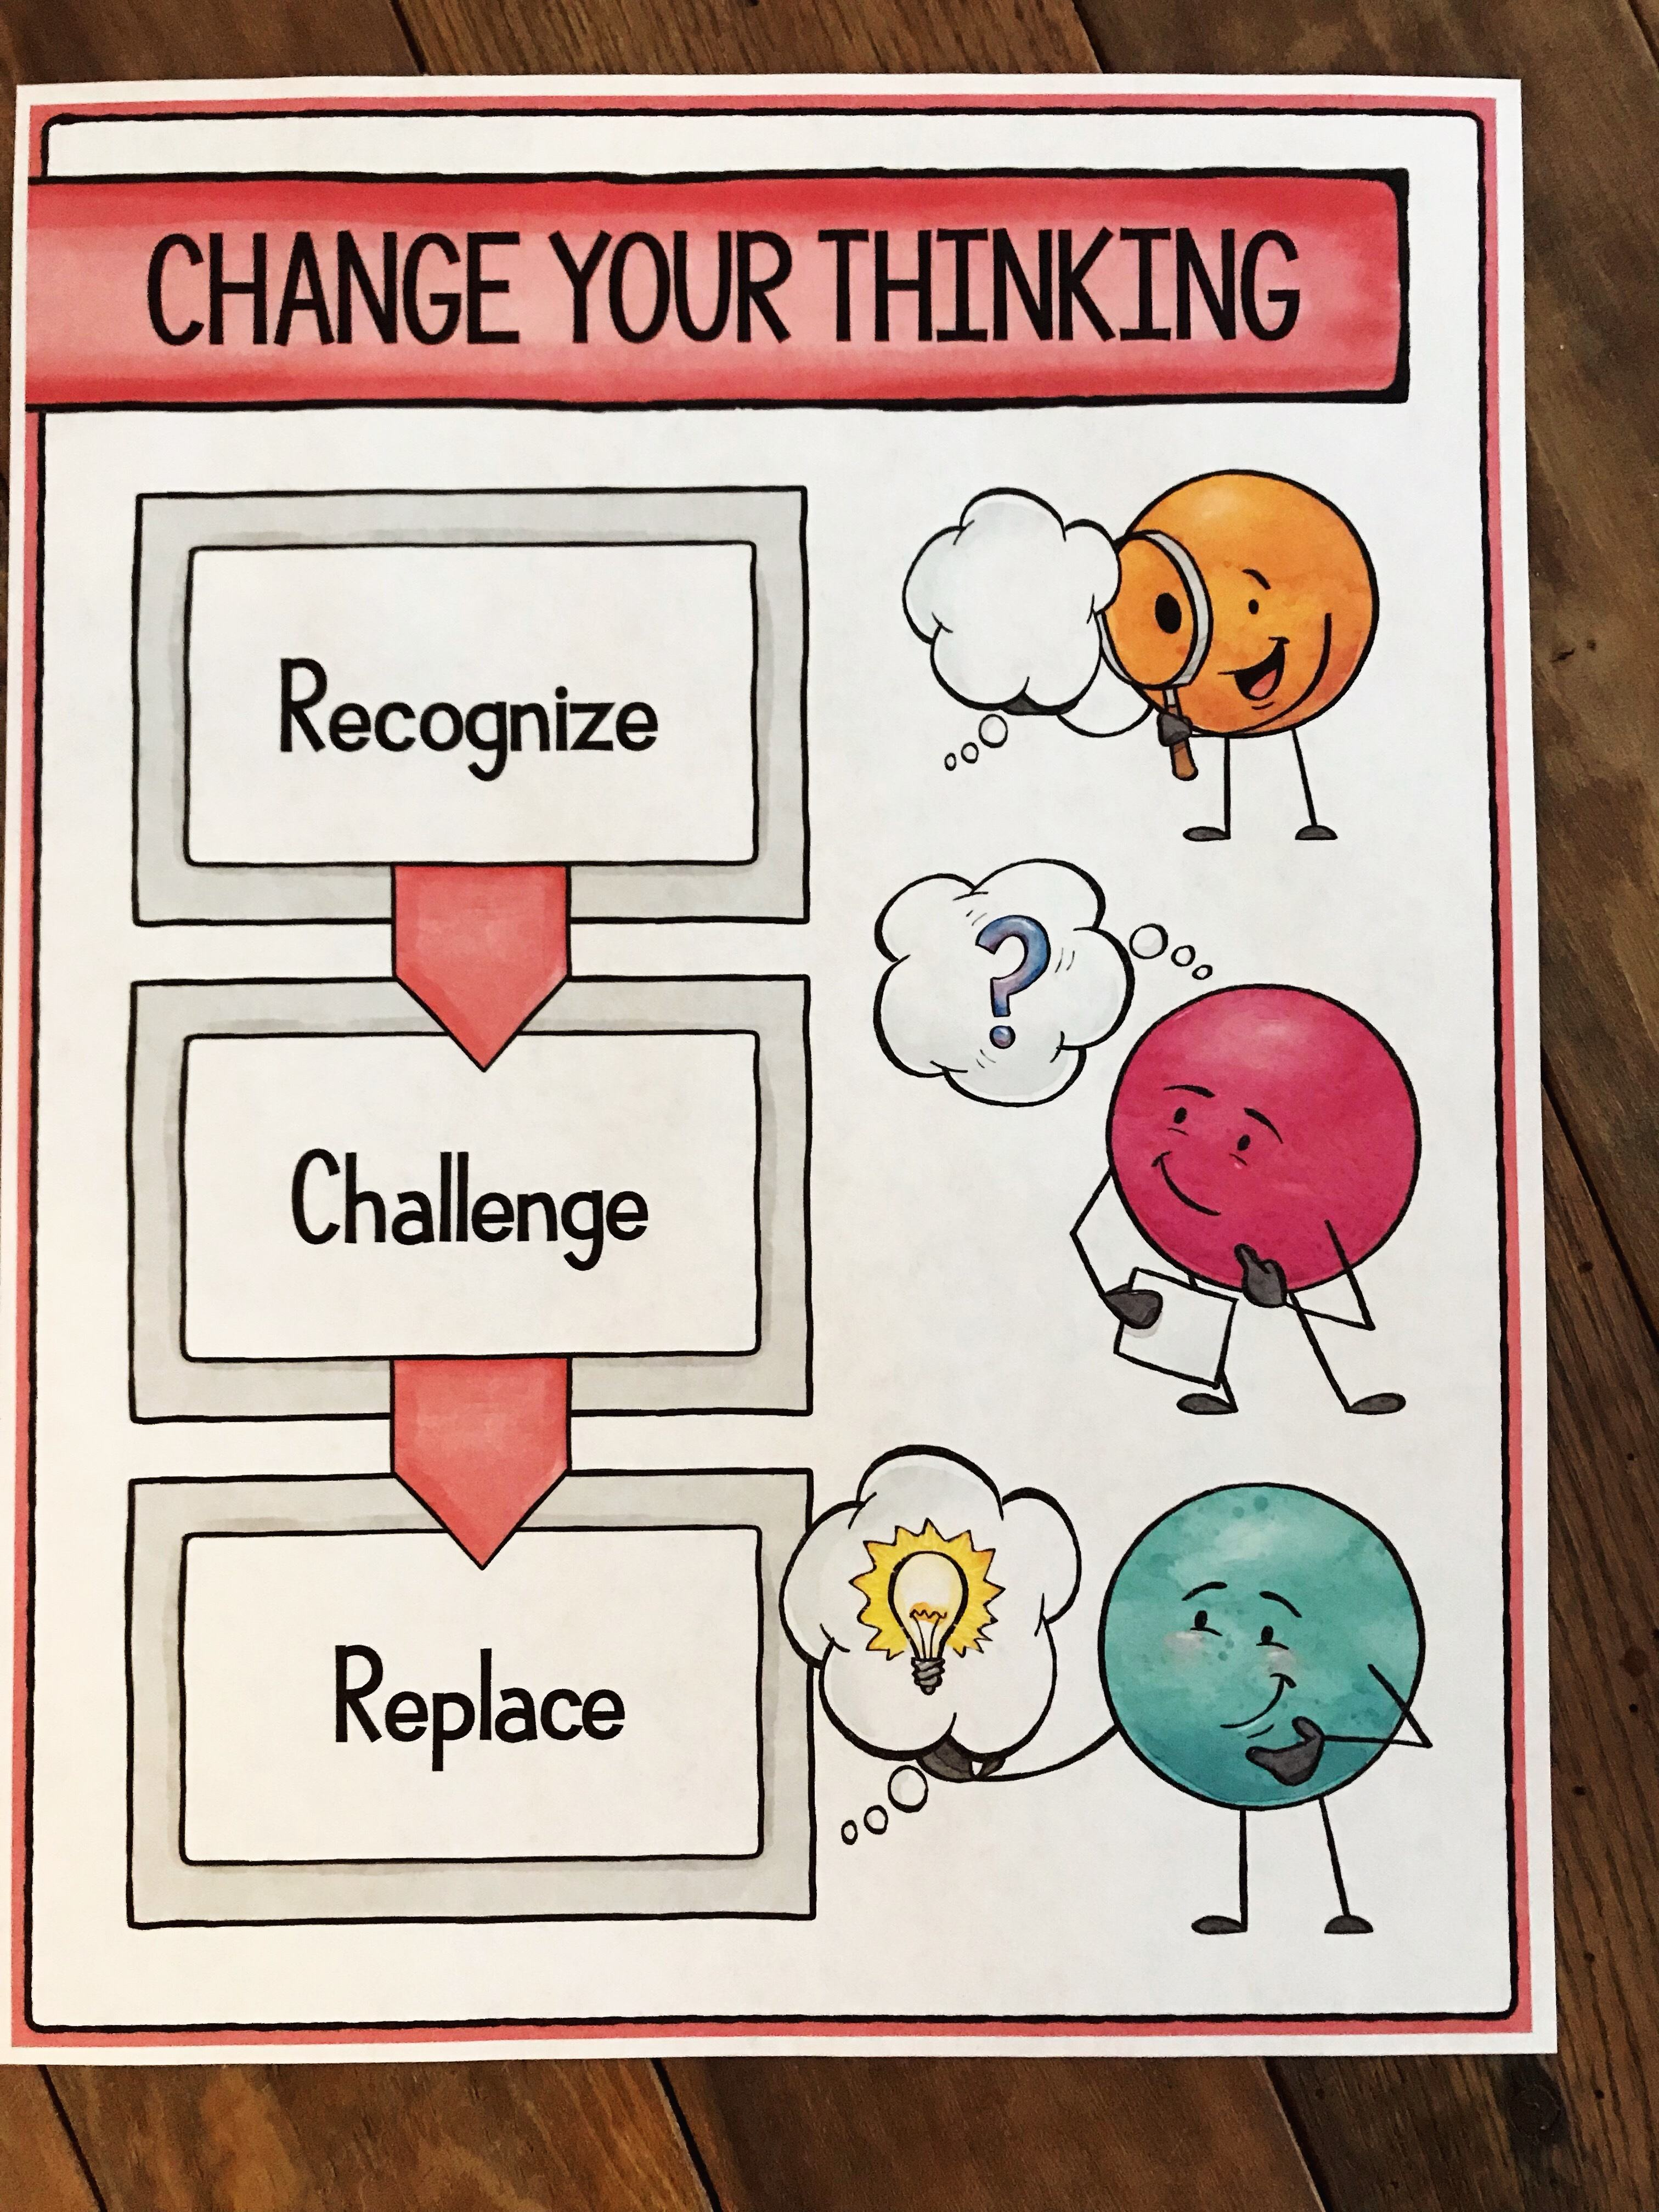 Changing your thinking poster